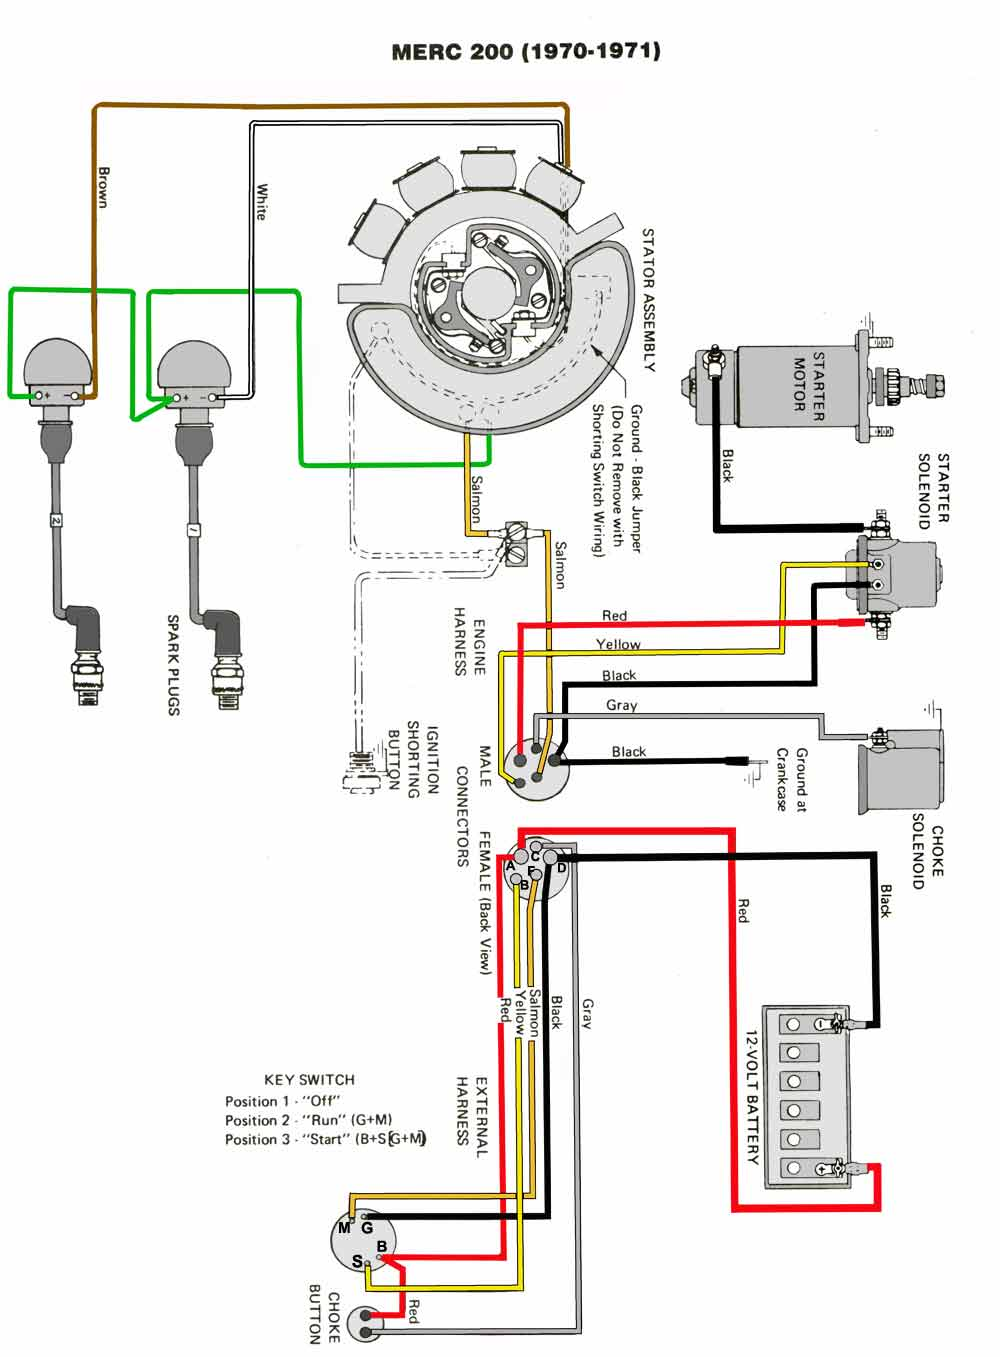 Hp Mercury Outboard Wiring Diagram Modern Design Of 1983 Diagrams Mastertech Marin Rh Maxrules Com 50 60